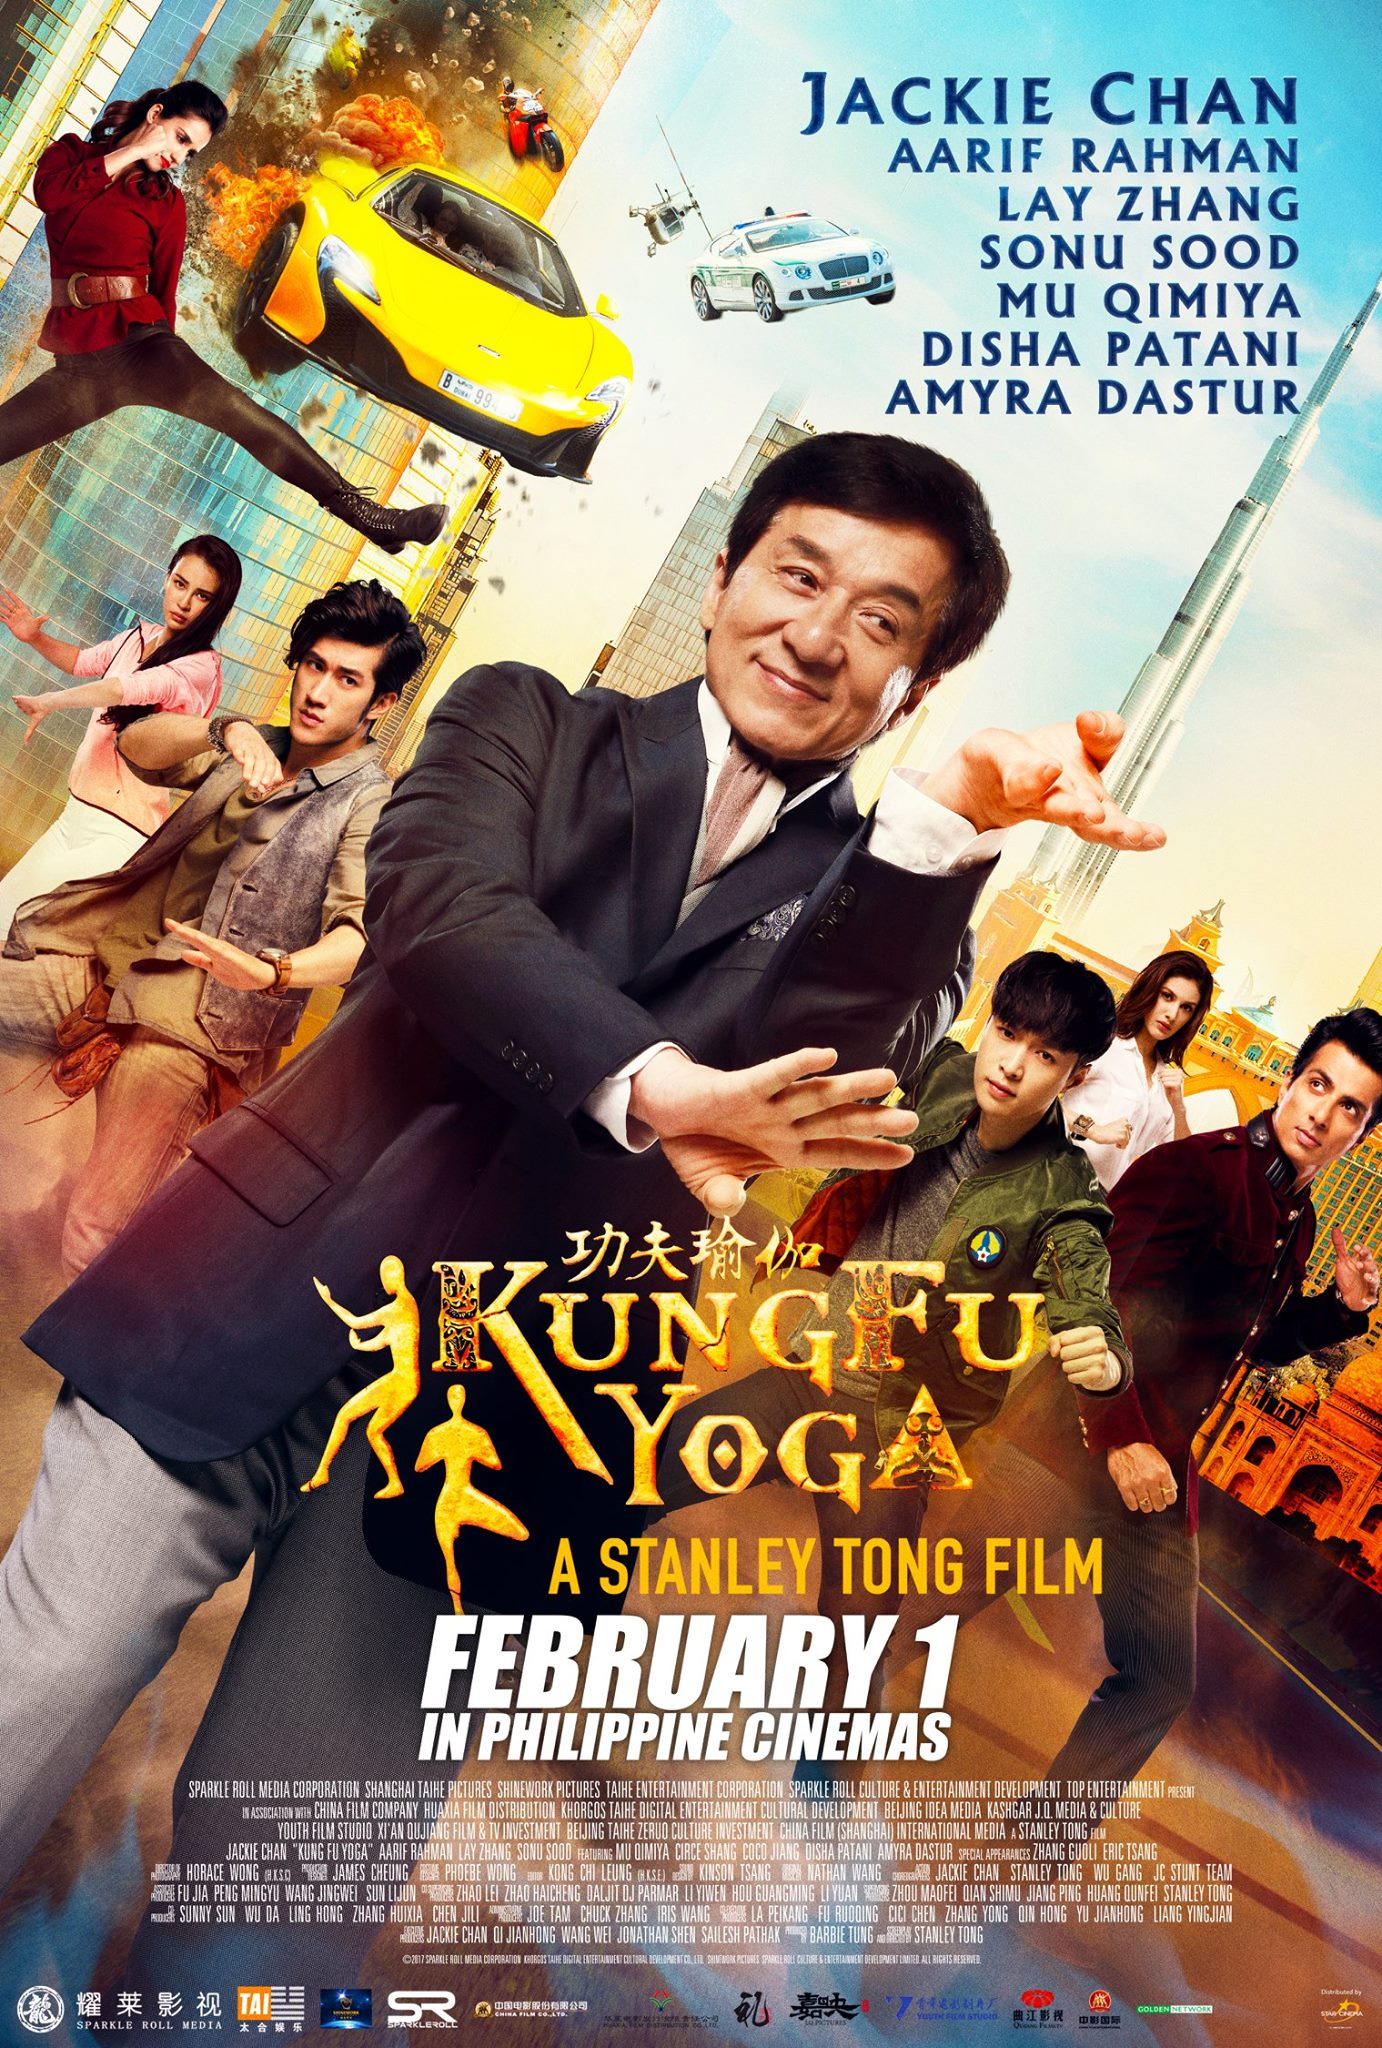 HD0672 - Kungfu Yoga 2017